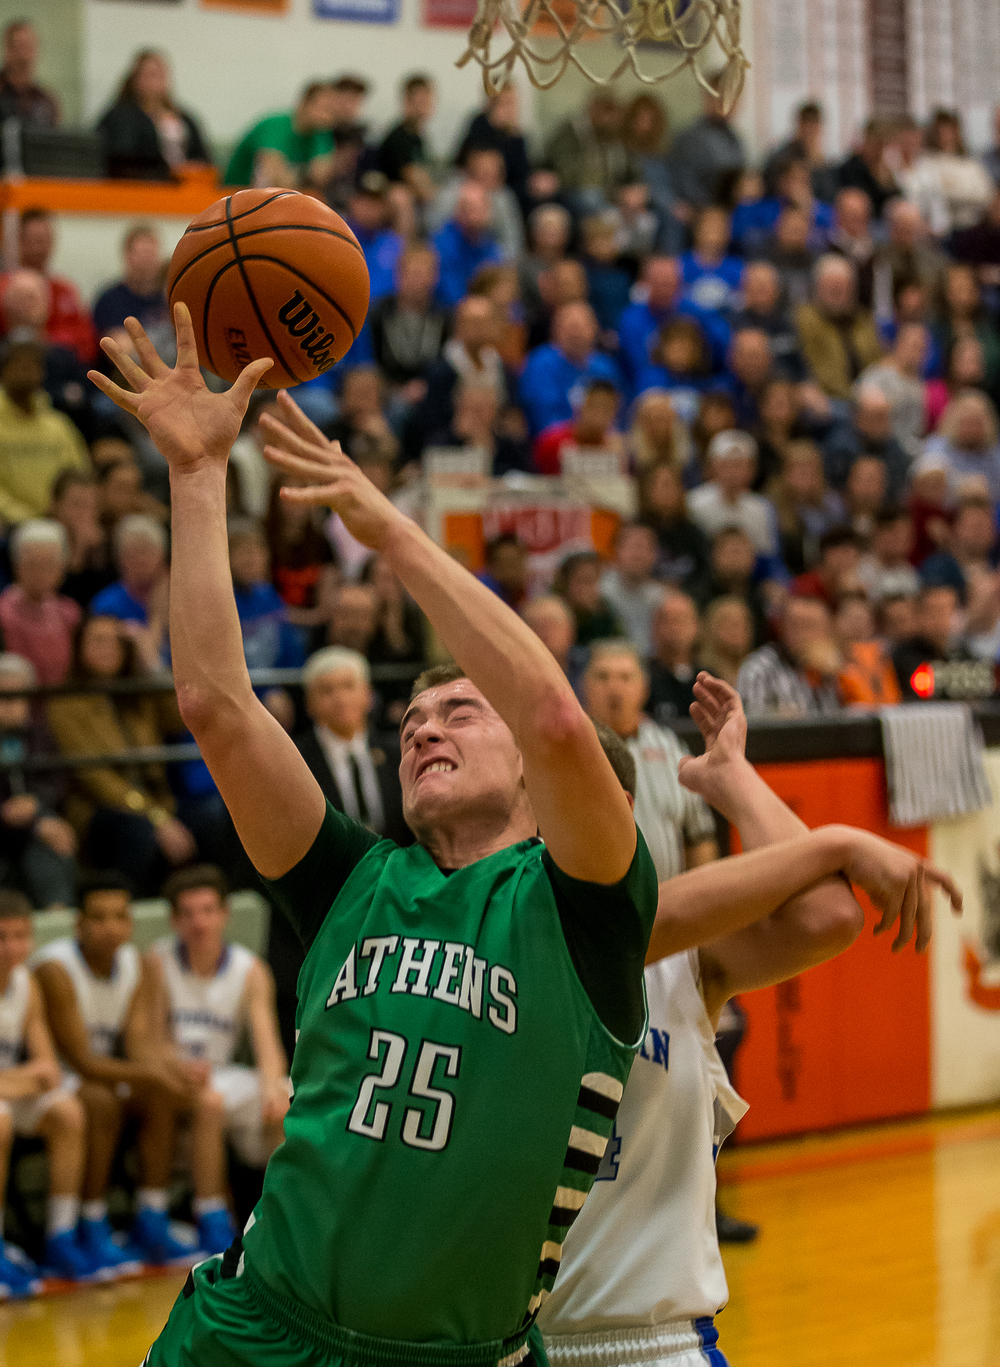 Athens' Eric Freer (25) gets fouled by Lutheran's Josh Kirby (14) going up for a shot in the first half during the championship game of the 64th annual Waverly Holiday Tournament at Waverly Grade School, Tuesday, Dec. 30, 2014, in Waverly , Ill. Justin L. Fowler/The State Journal-Register